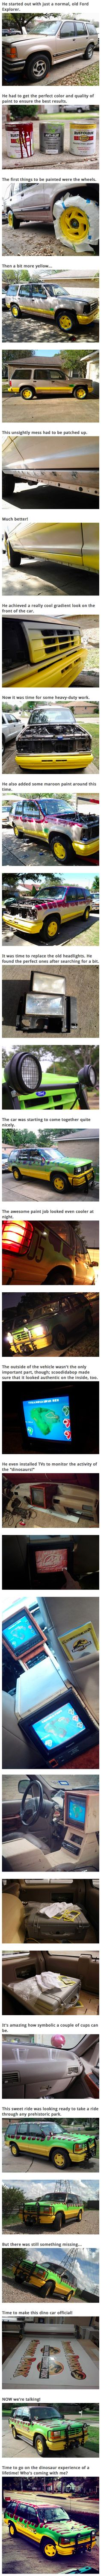 When it comes to vehicle makeovers, Imgur user skoodidabop might take the cake for the best movie replica ever. He took a 1993 Ford Explorer and spent a year working turning it into a Jurassic Park tour truck. He claims it's still not done yet, but seeing it even now is almost too impressive for words!